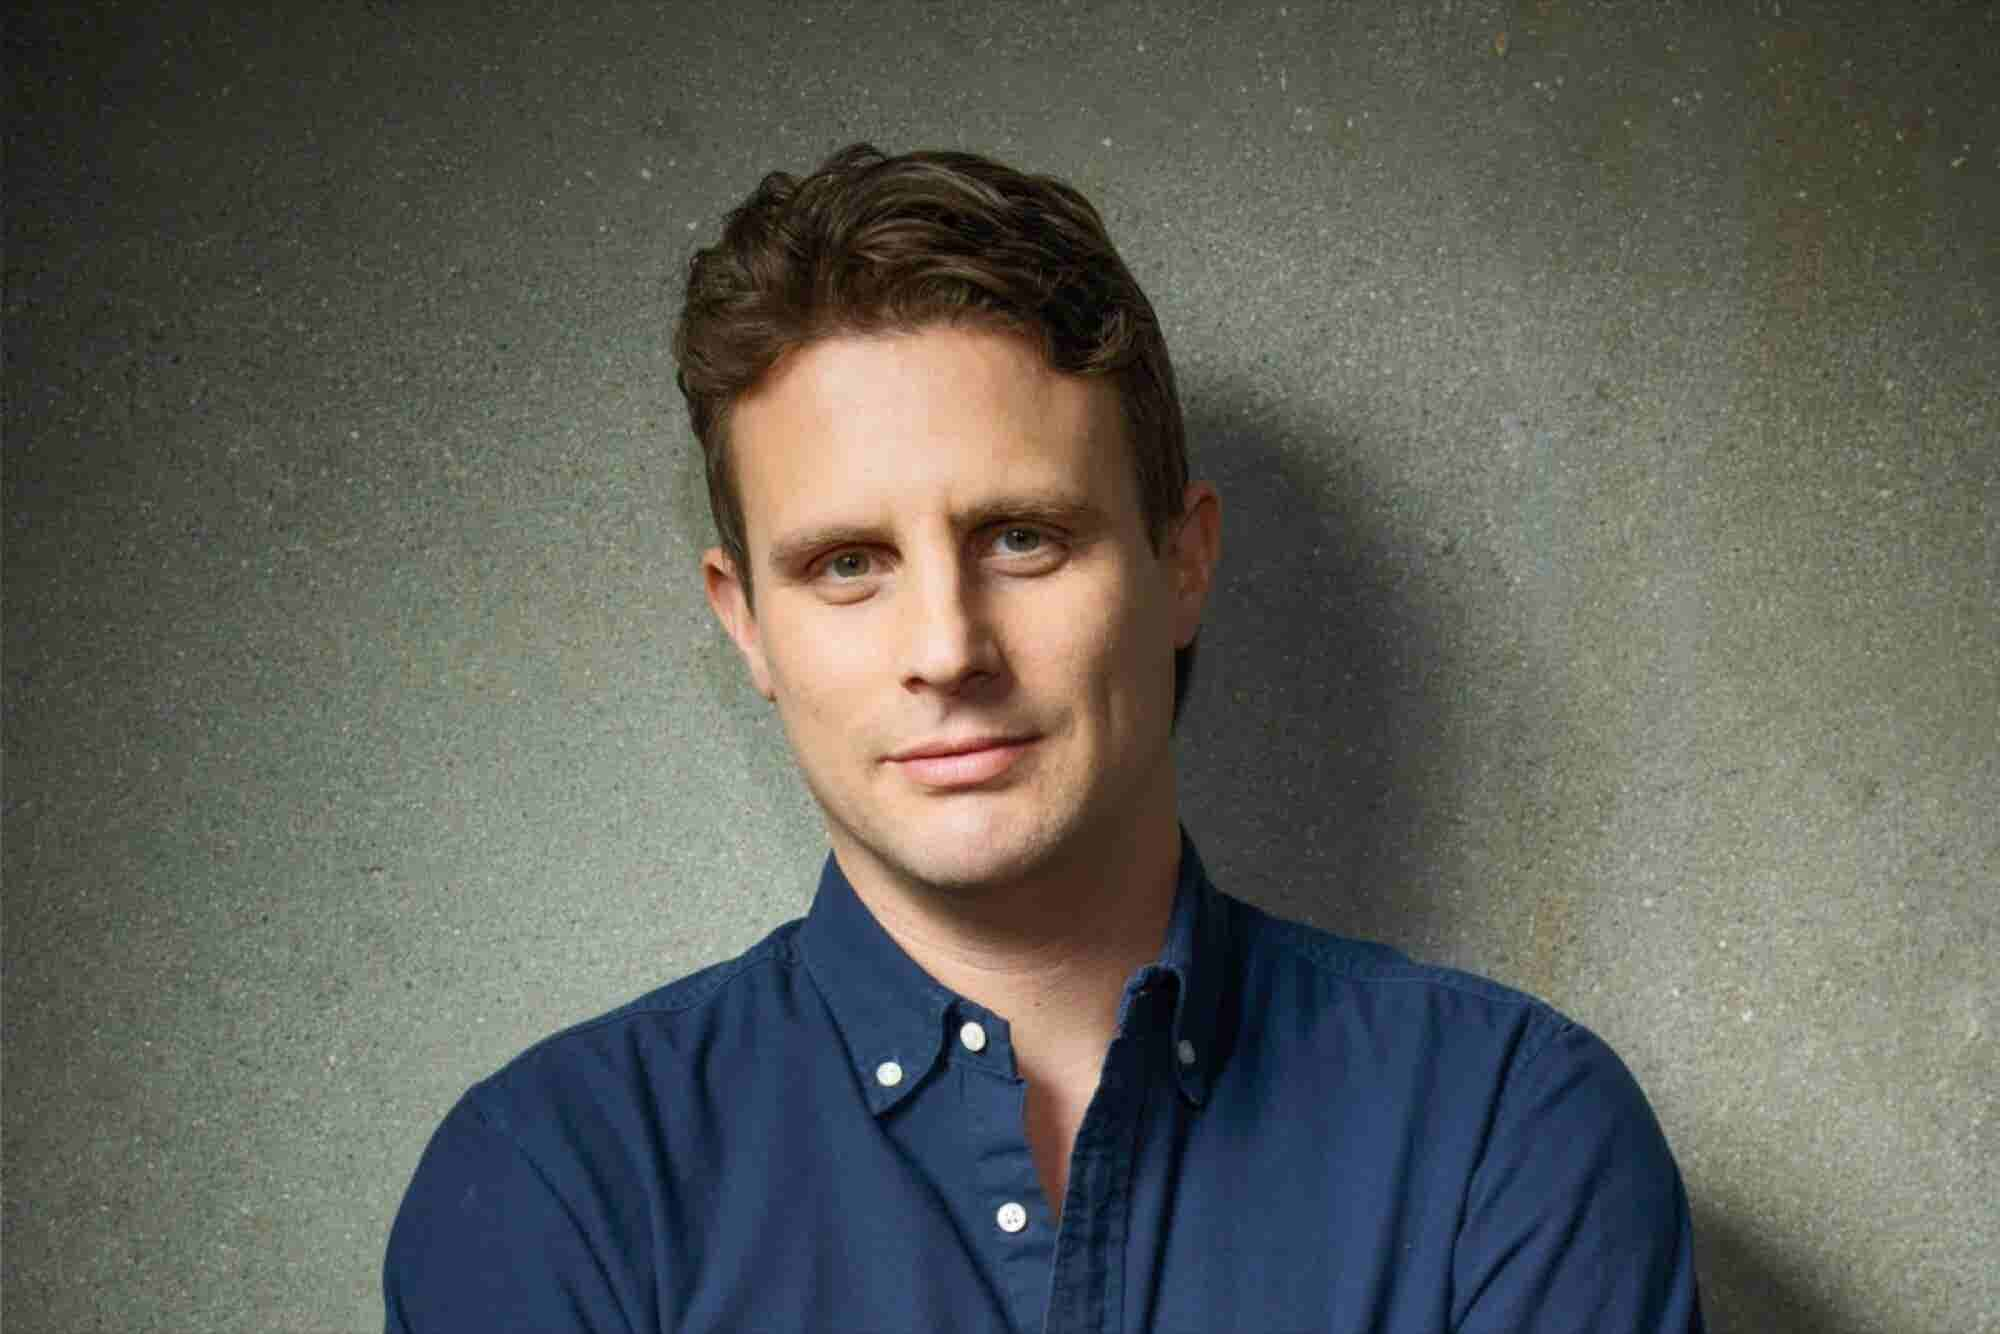 How Dollar Shave Club's Founder Built a $1 Billion Company That Change...